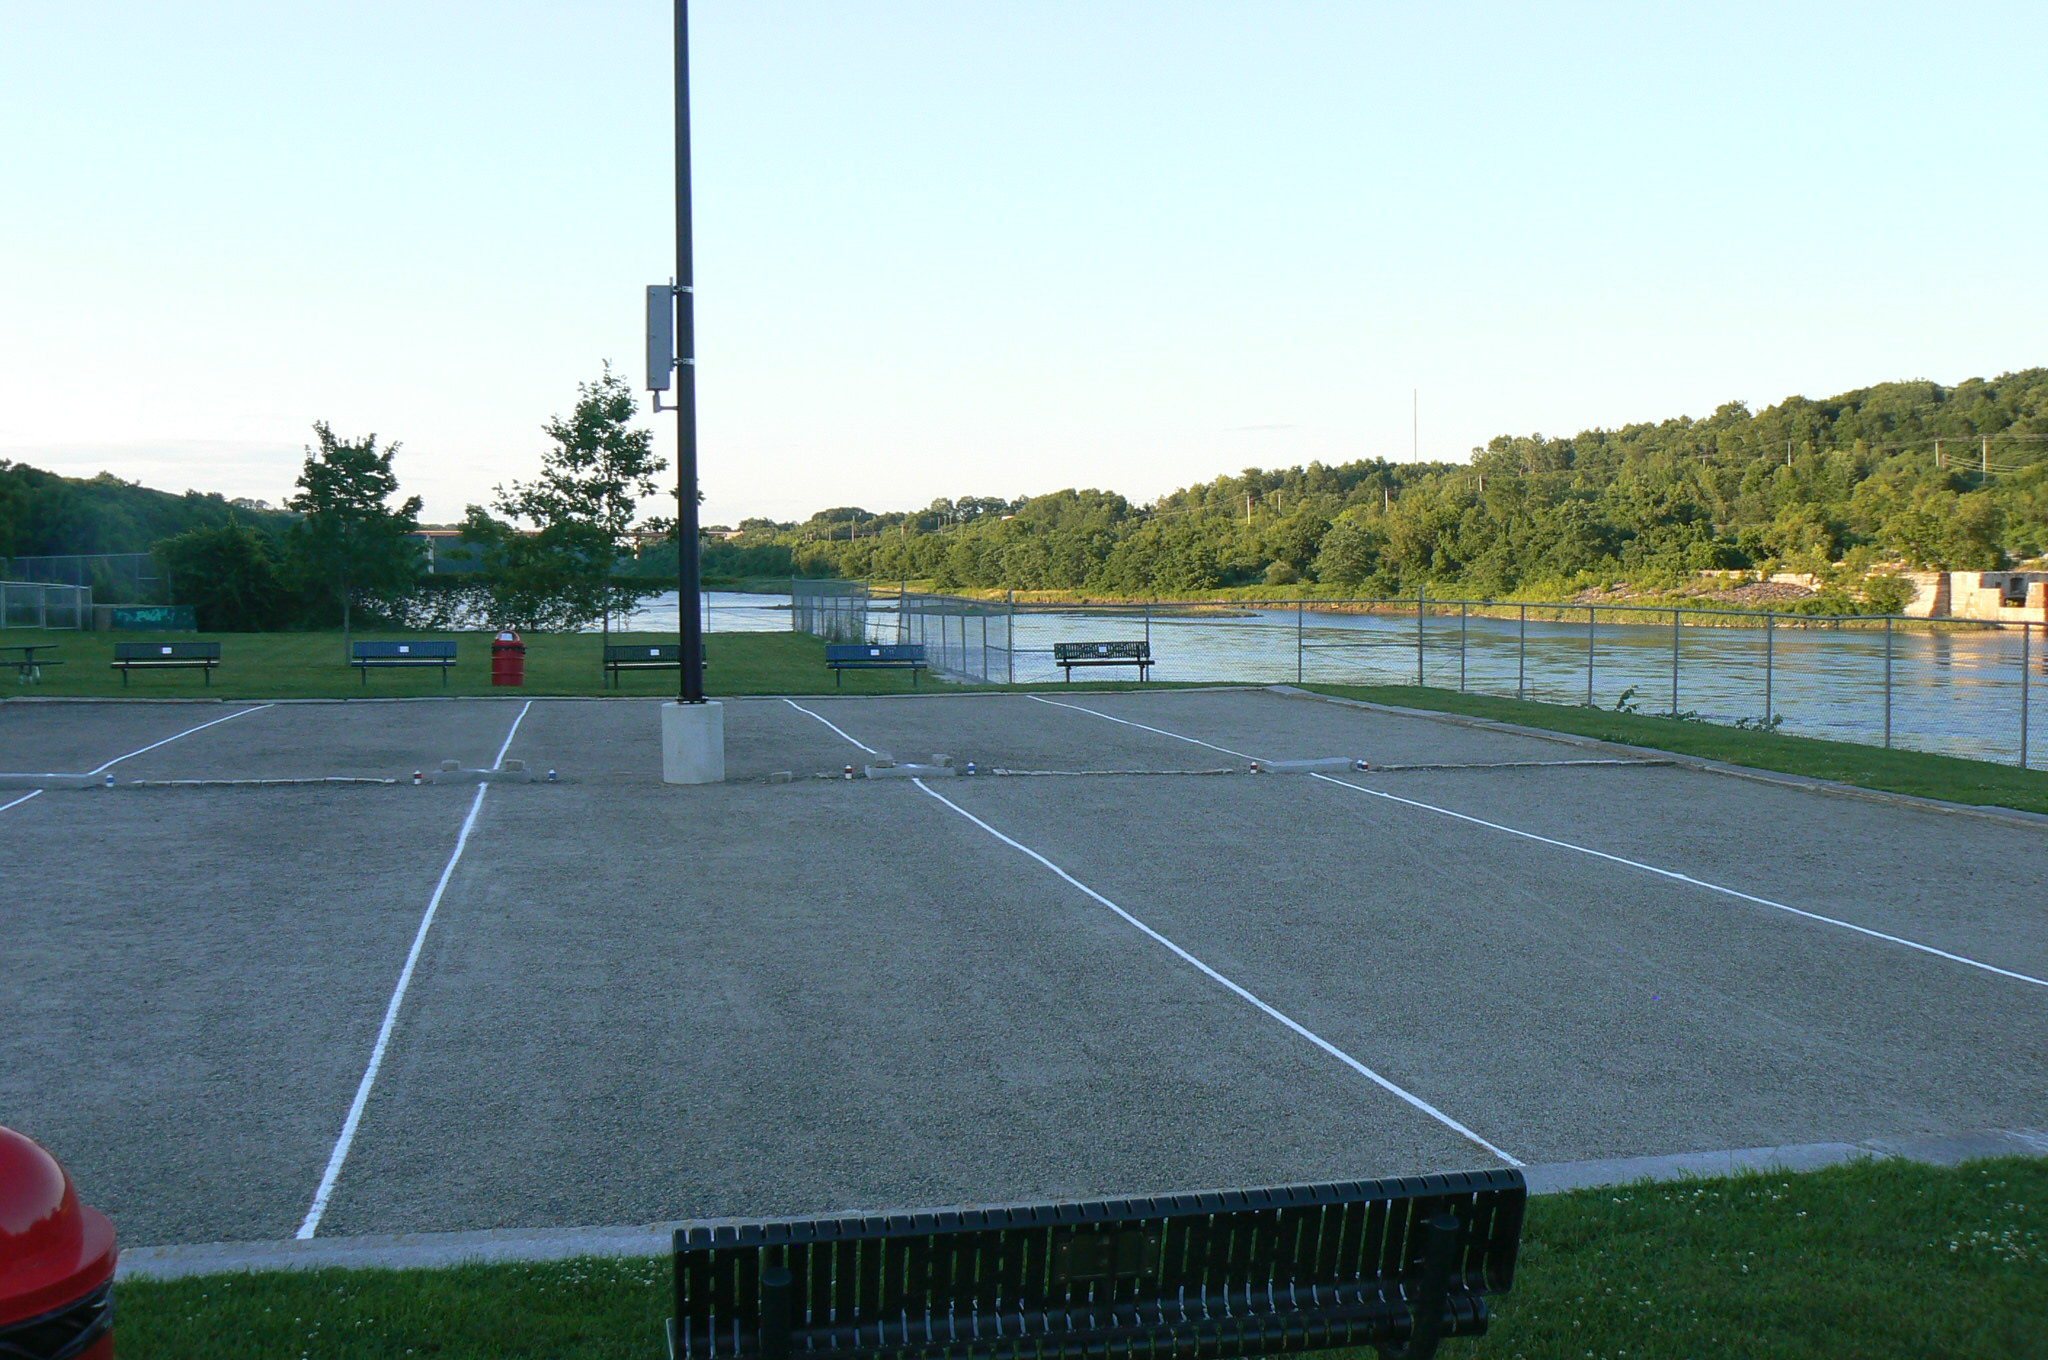 Courts ready for play.JPG